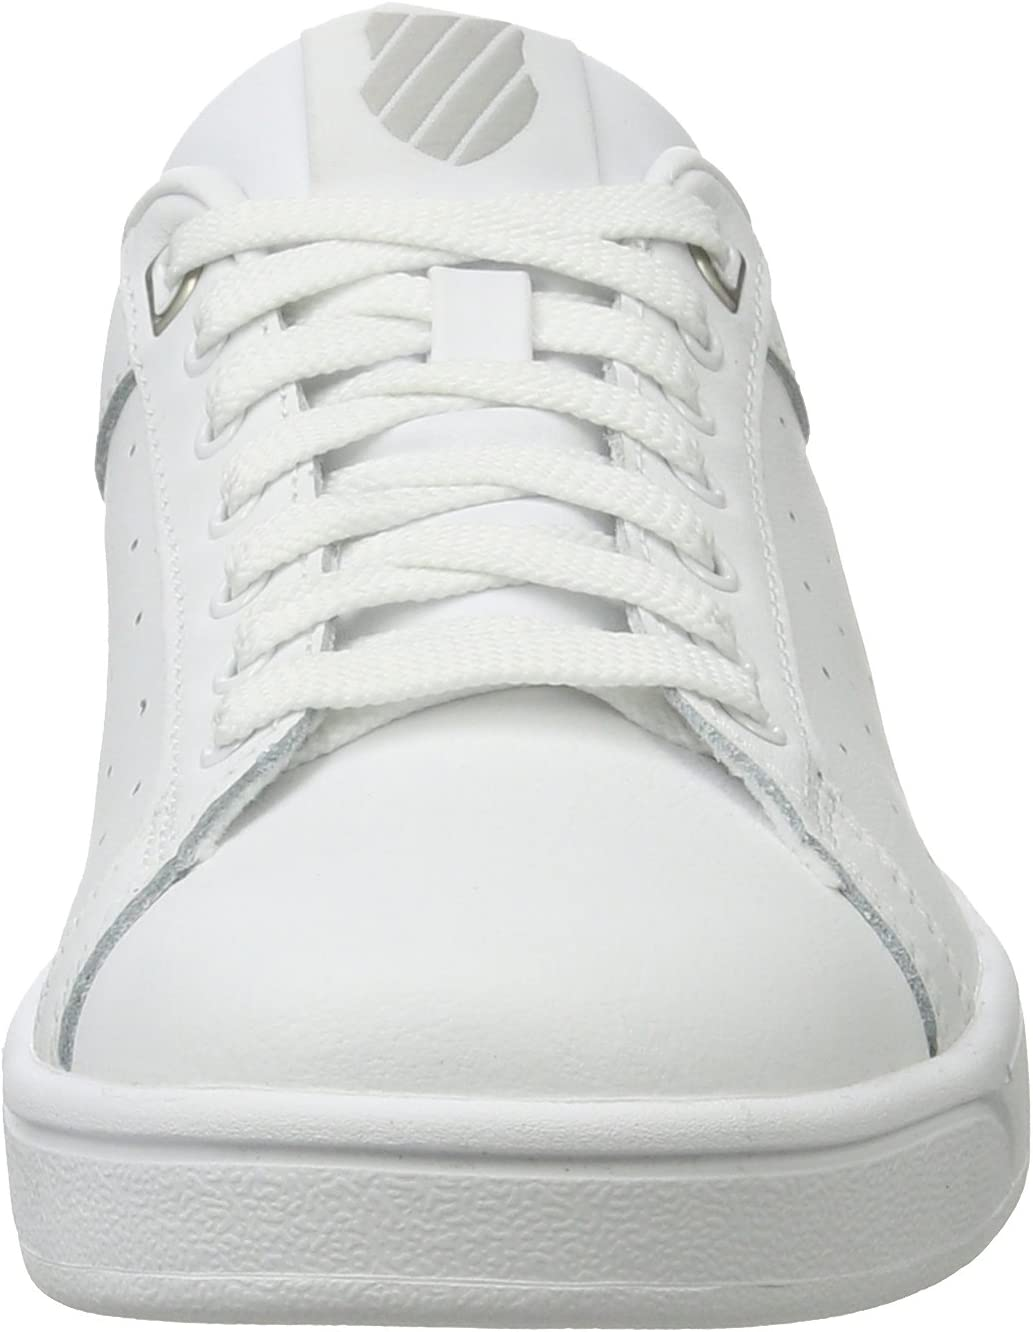 K-Swiss Clean Court CMF Sneakers voor dames Wit Wit Wit Gull Gray 131